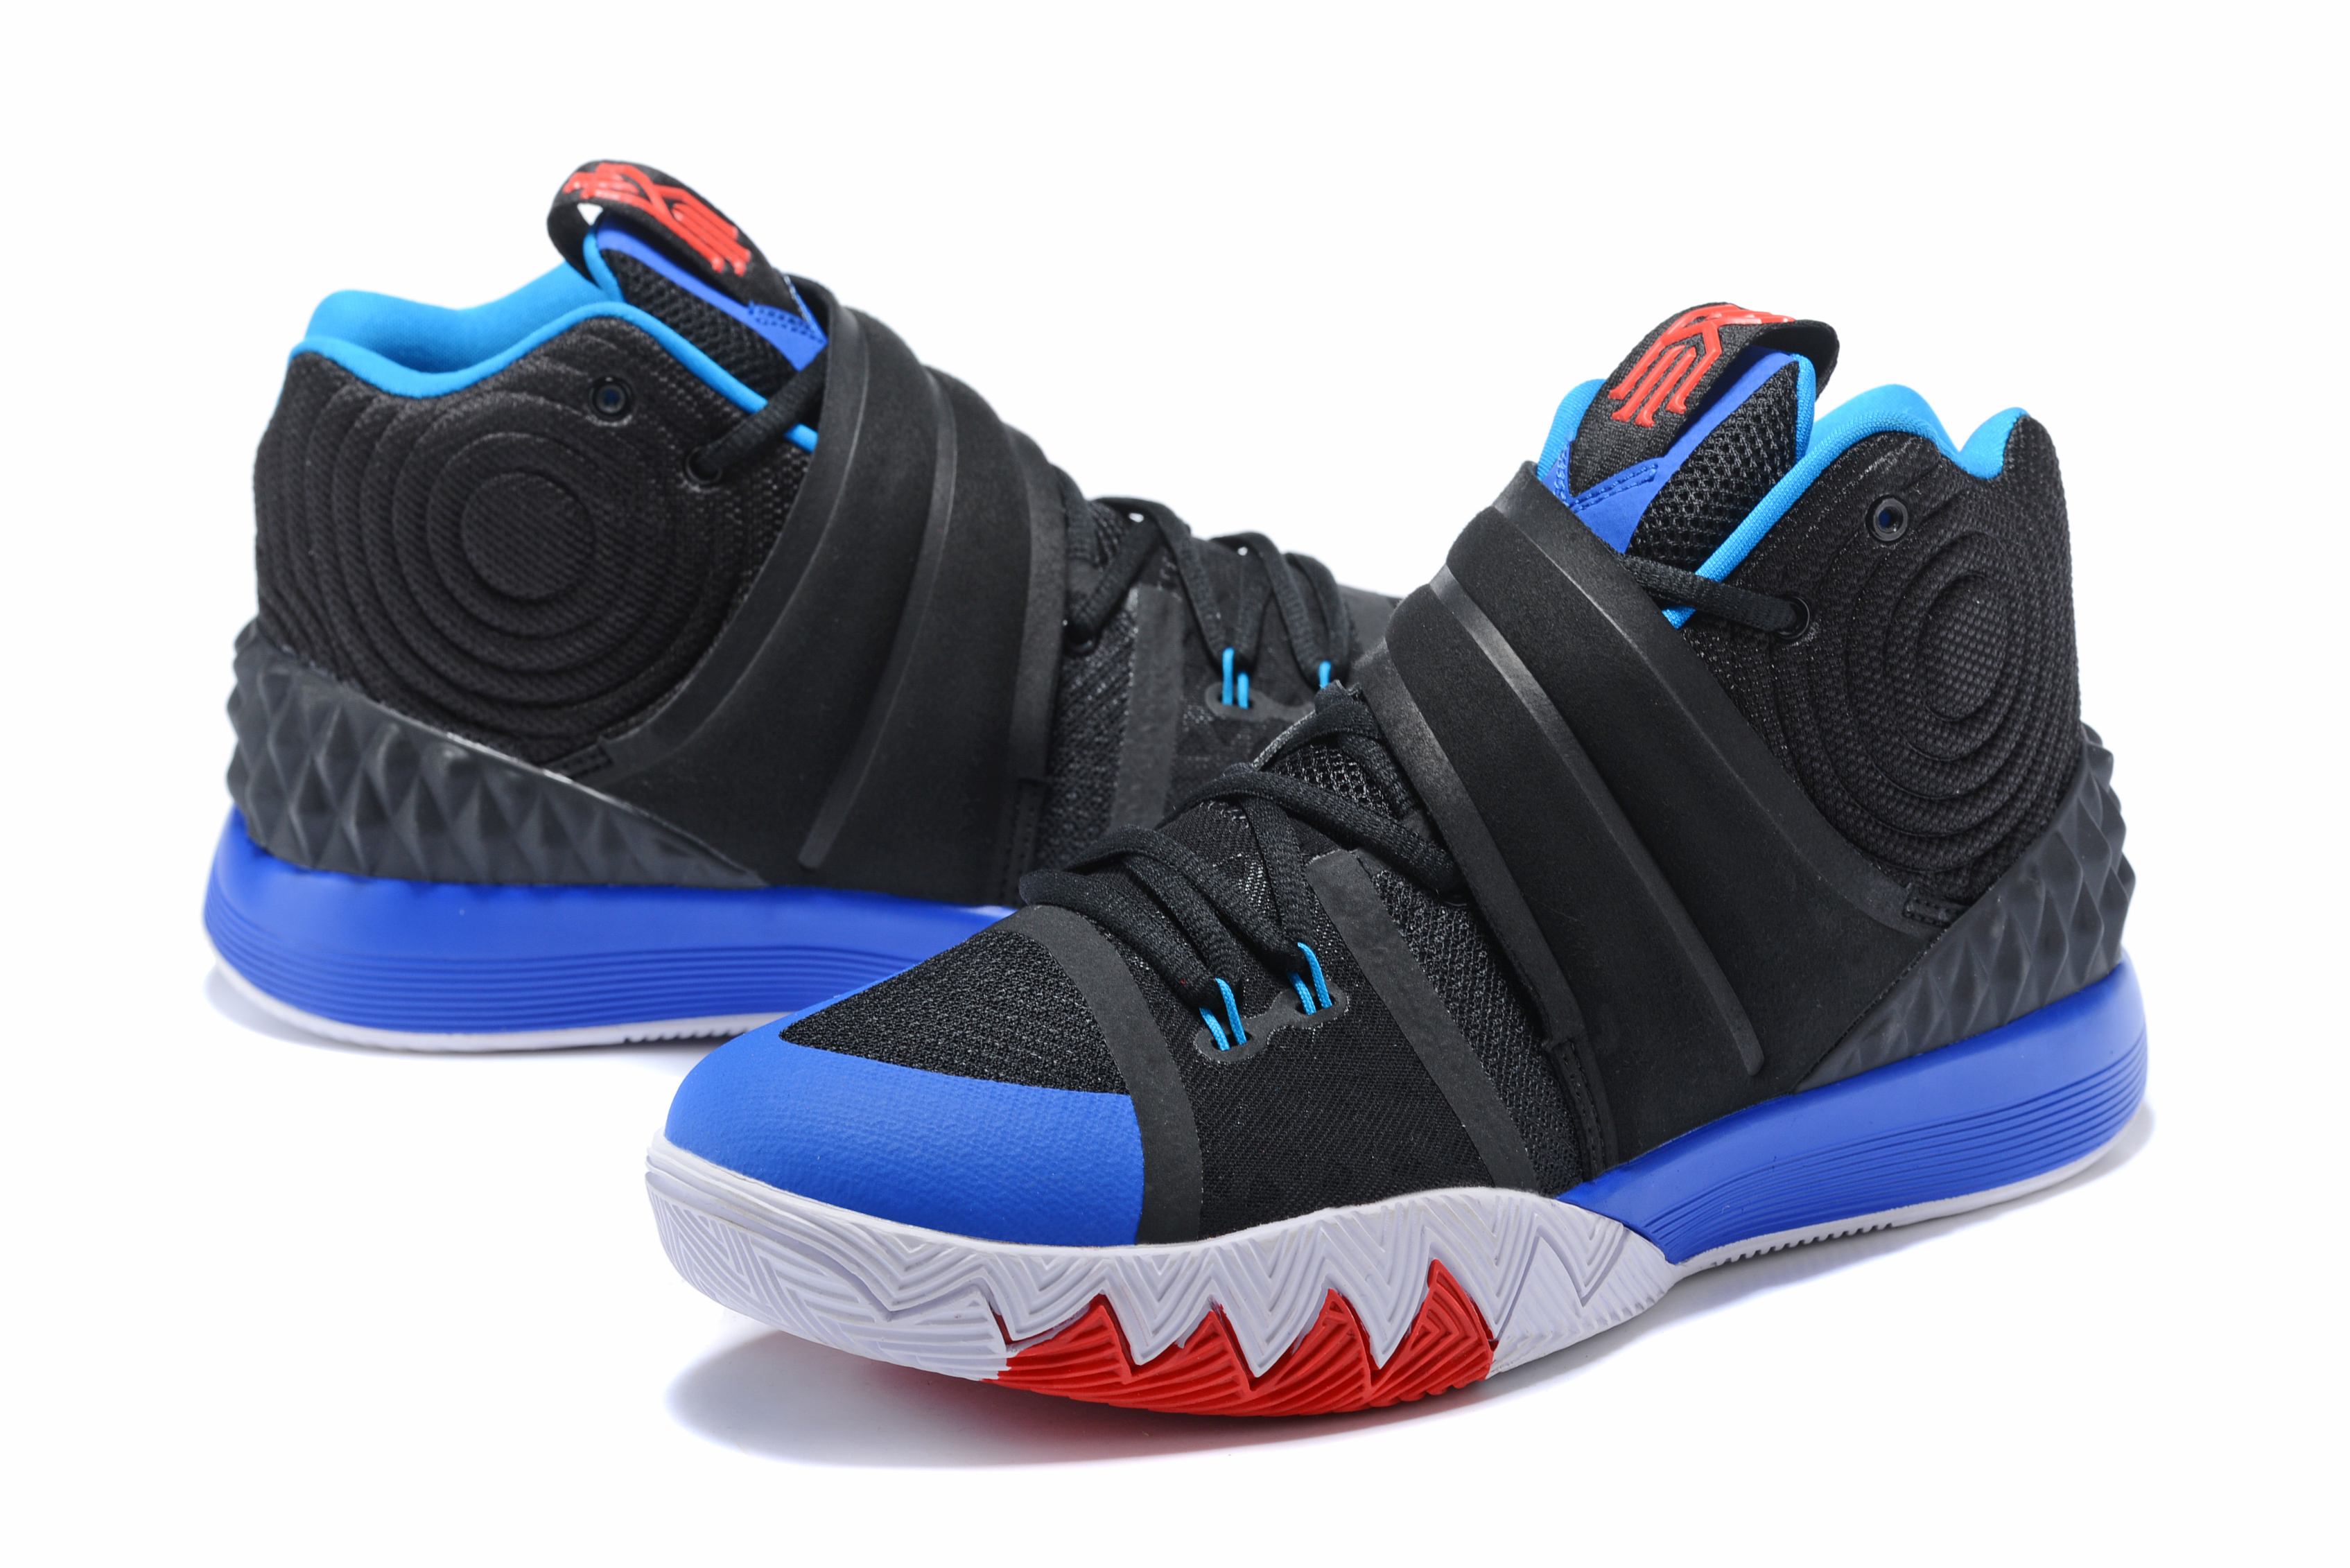 Nike Kyrie S1HYBRID Black Blue Shoes